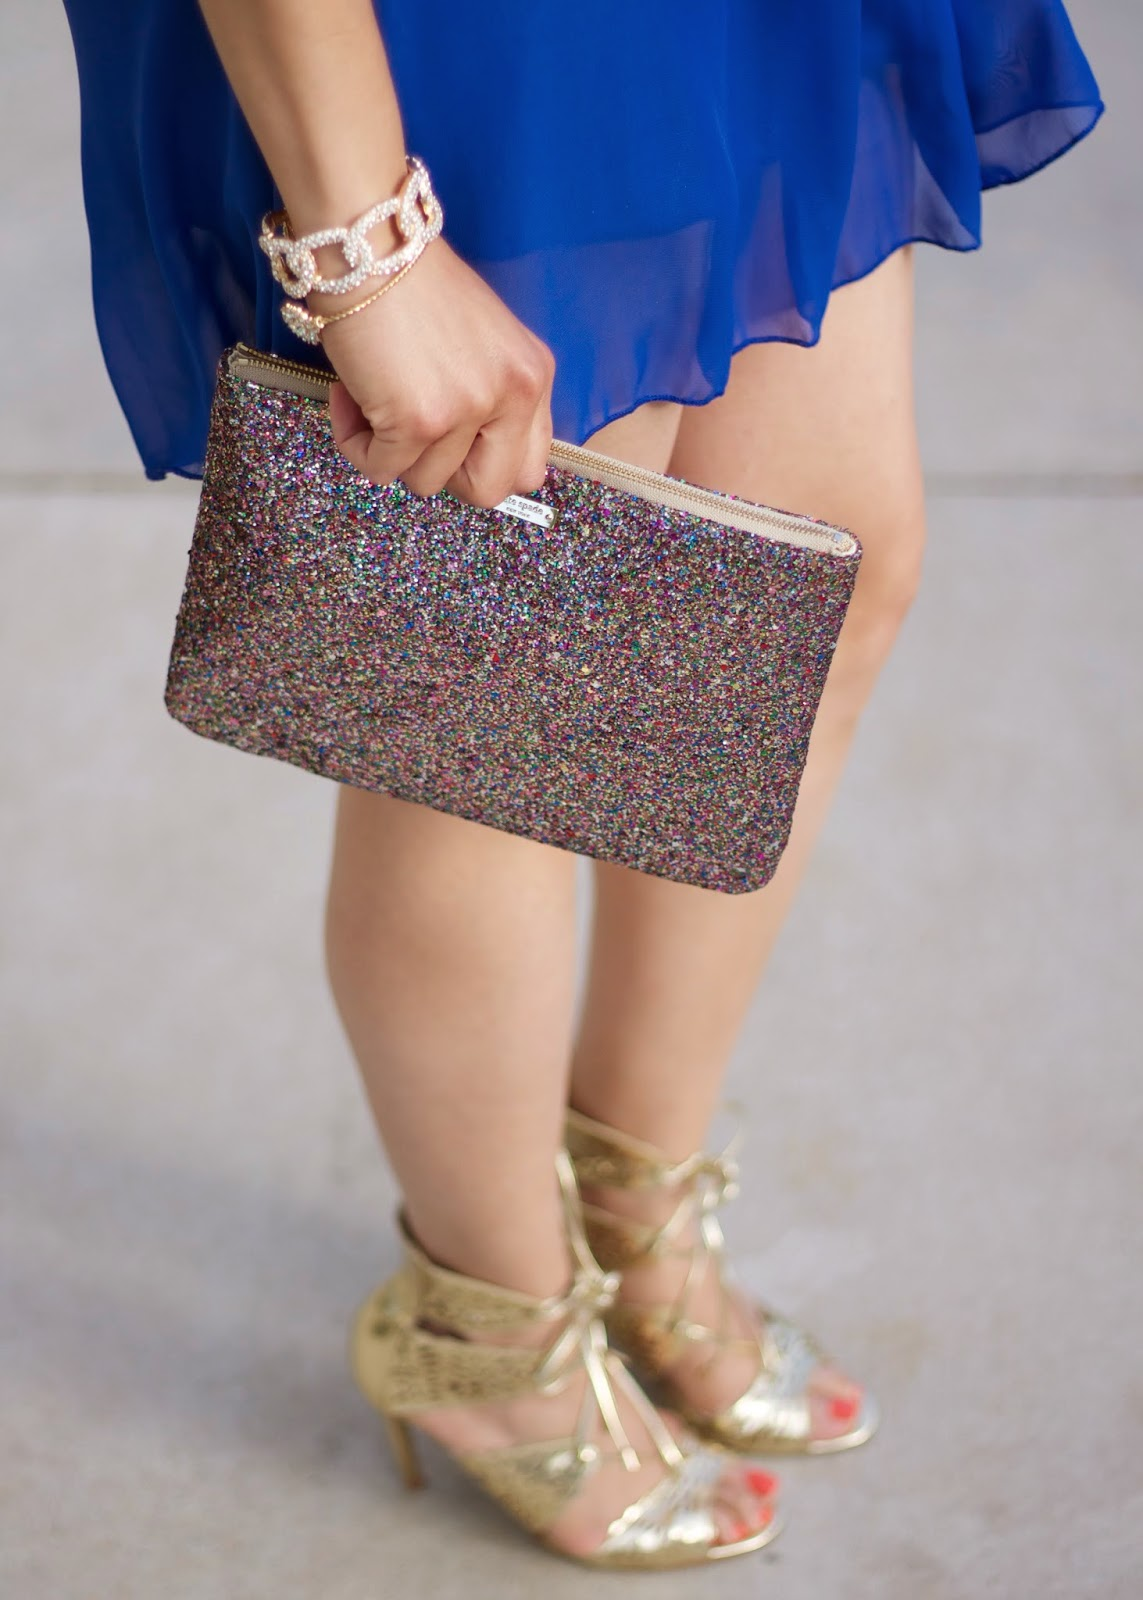 Fun and girly accessories, kate spade accessories, glitter clutch, gold heels, gold sandal heels